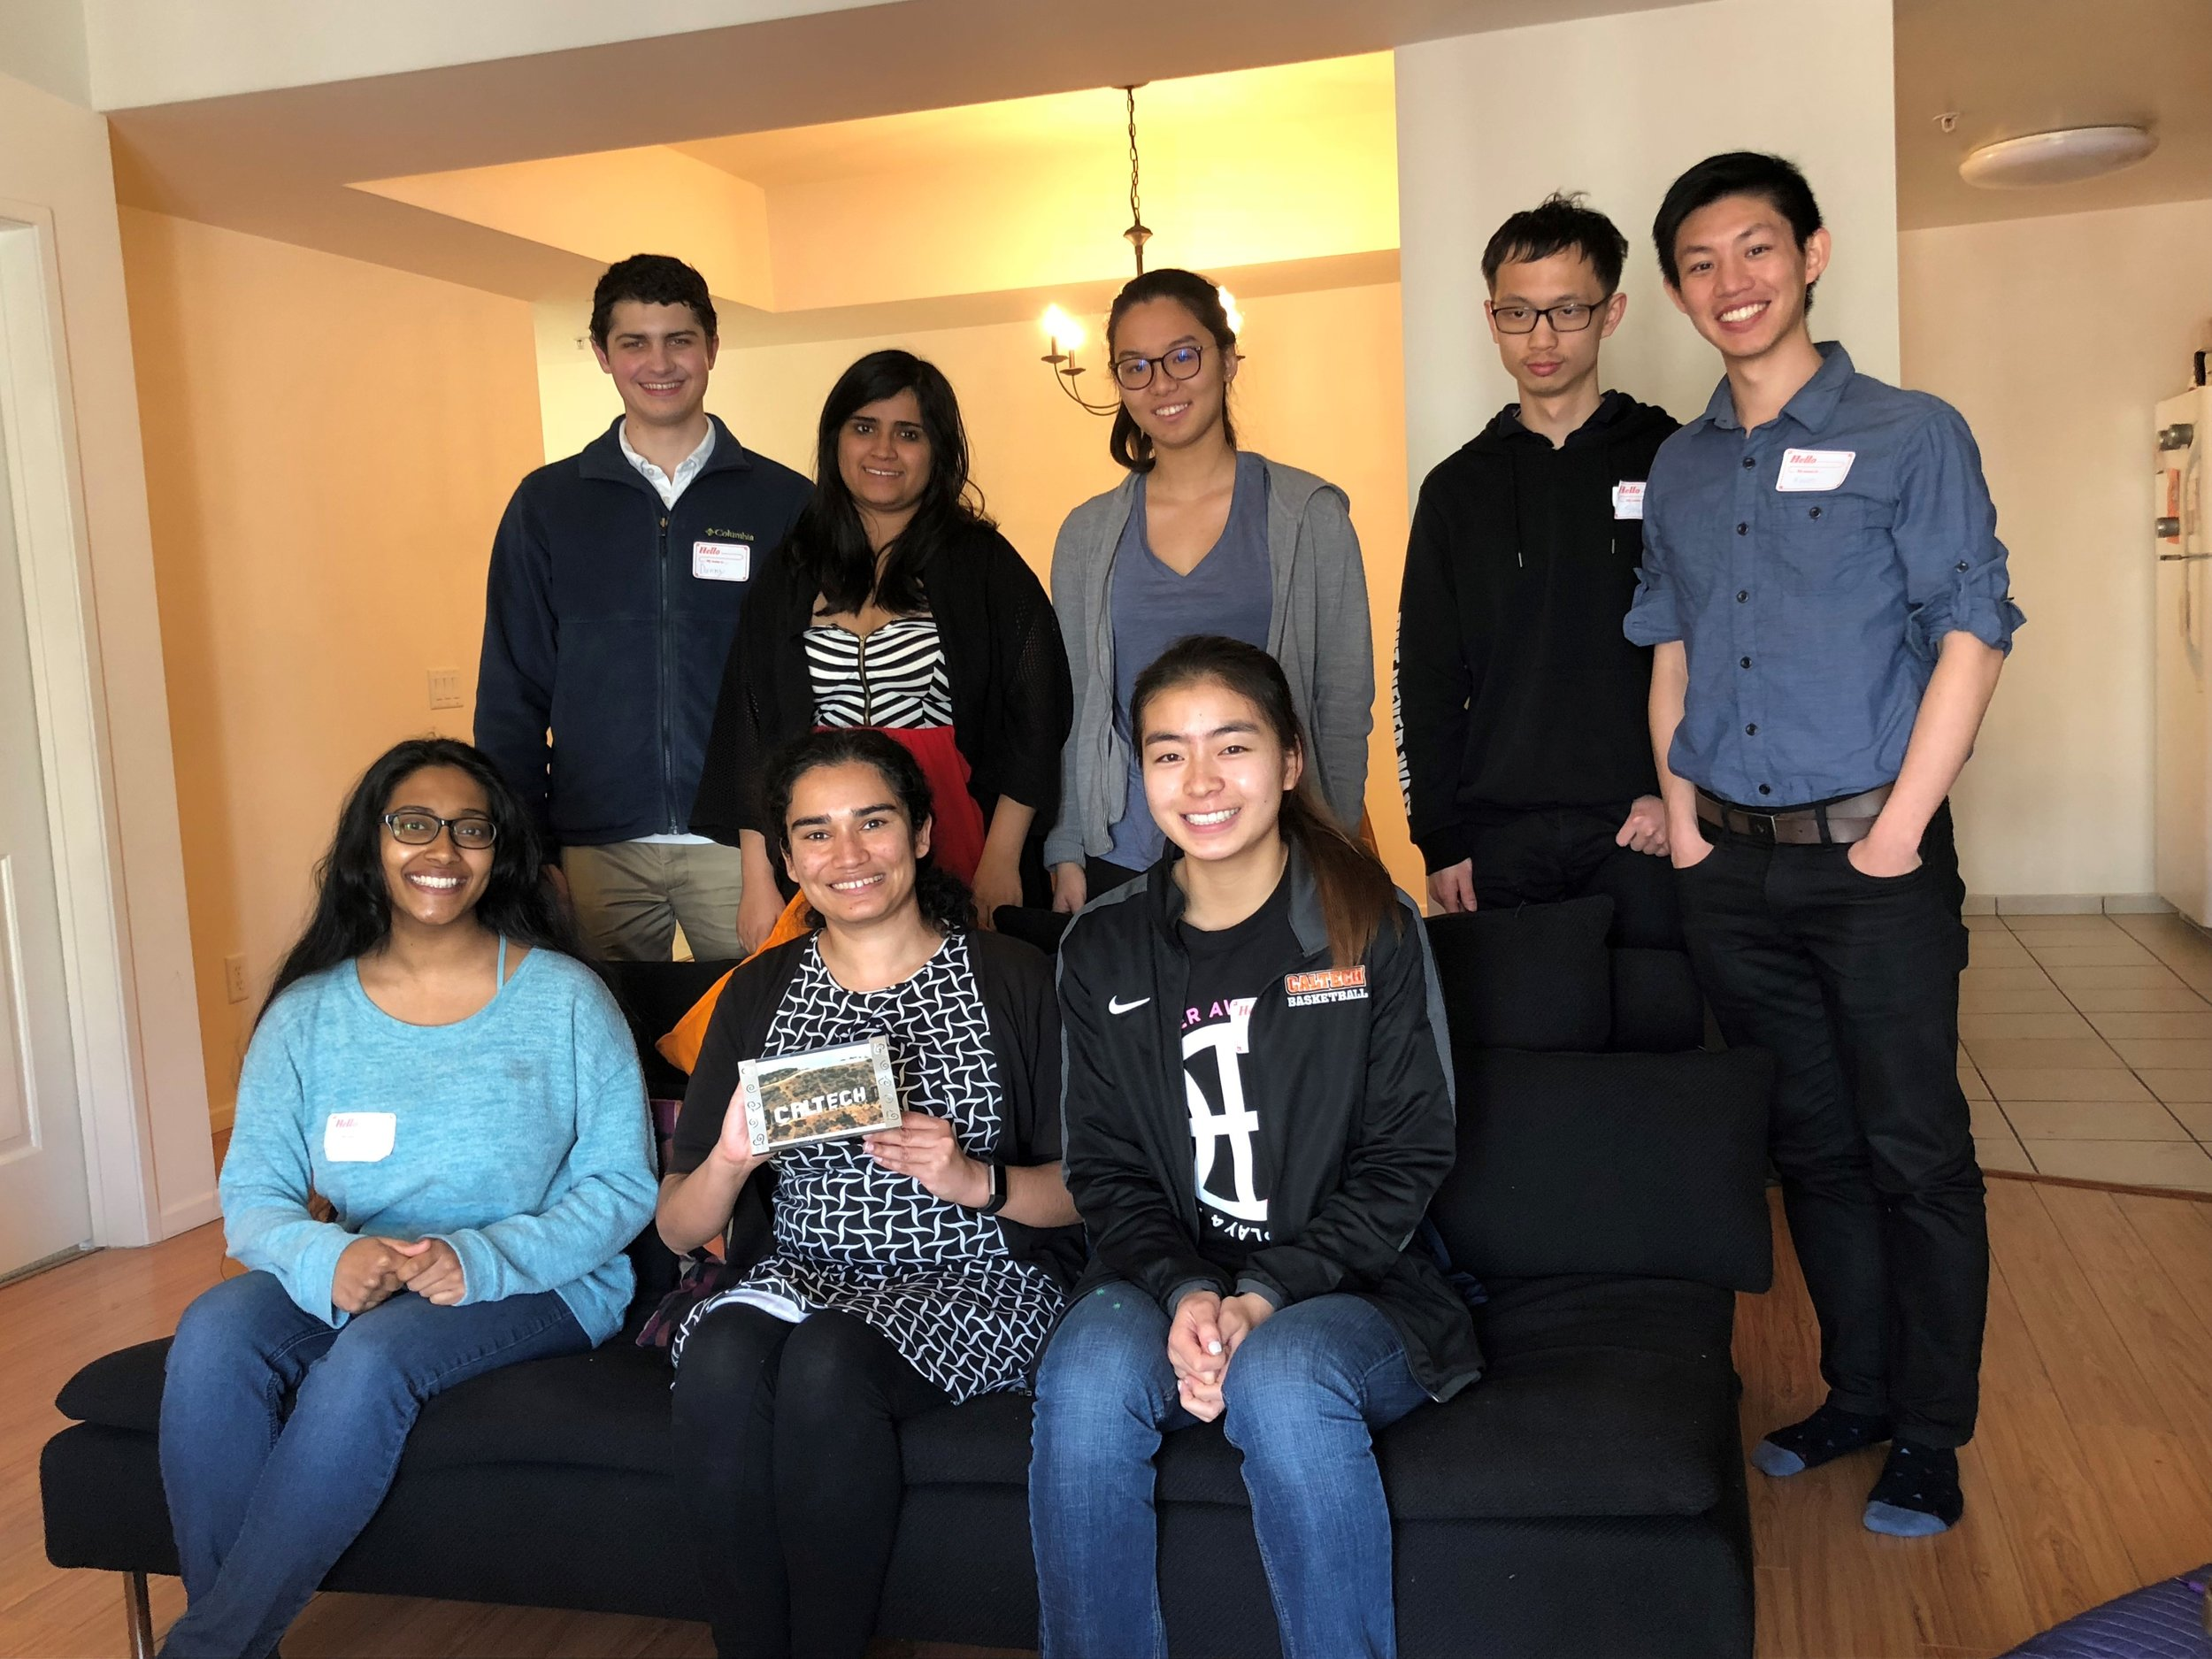 Thank you, Maryam Ali (BS '05), for hosting 8 students for lunch on Saturday, Feb. 10th!